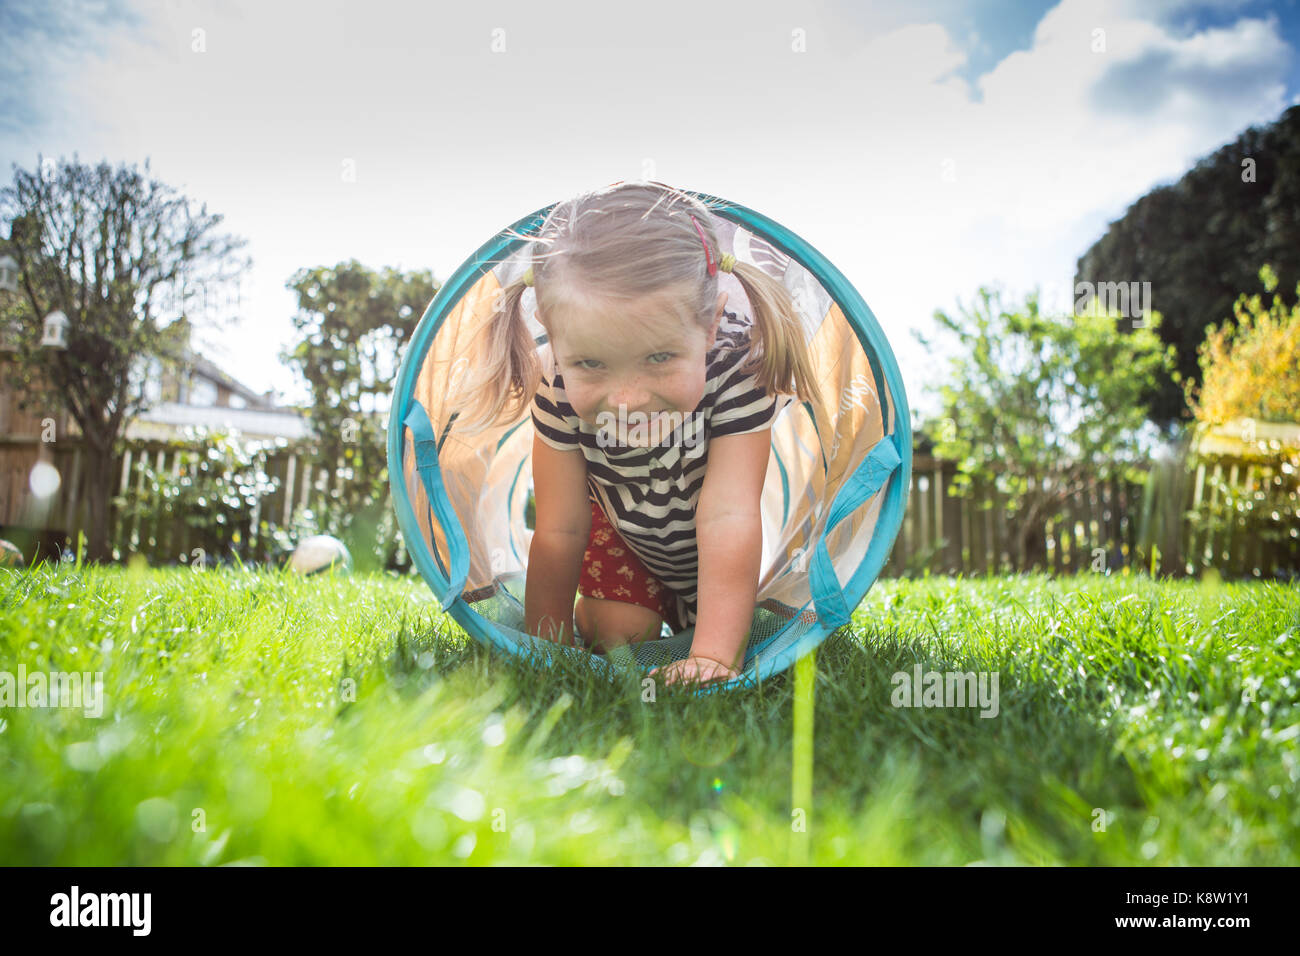 little girl playing in garden - Stock Image